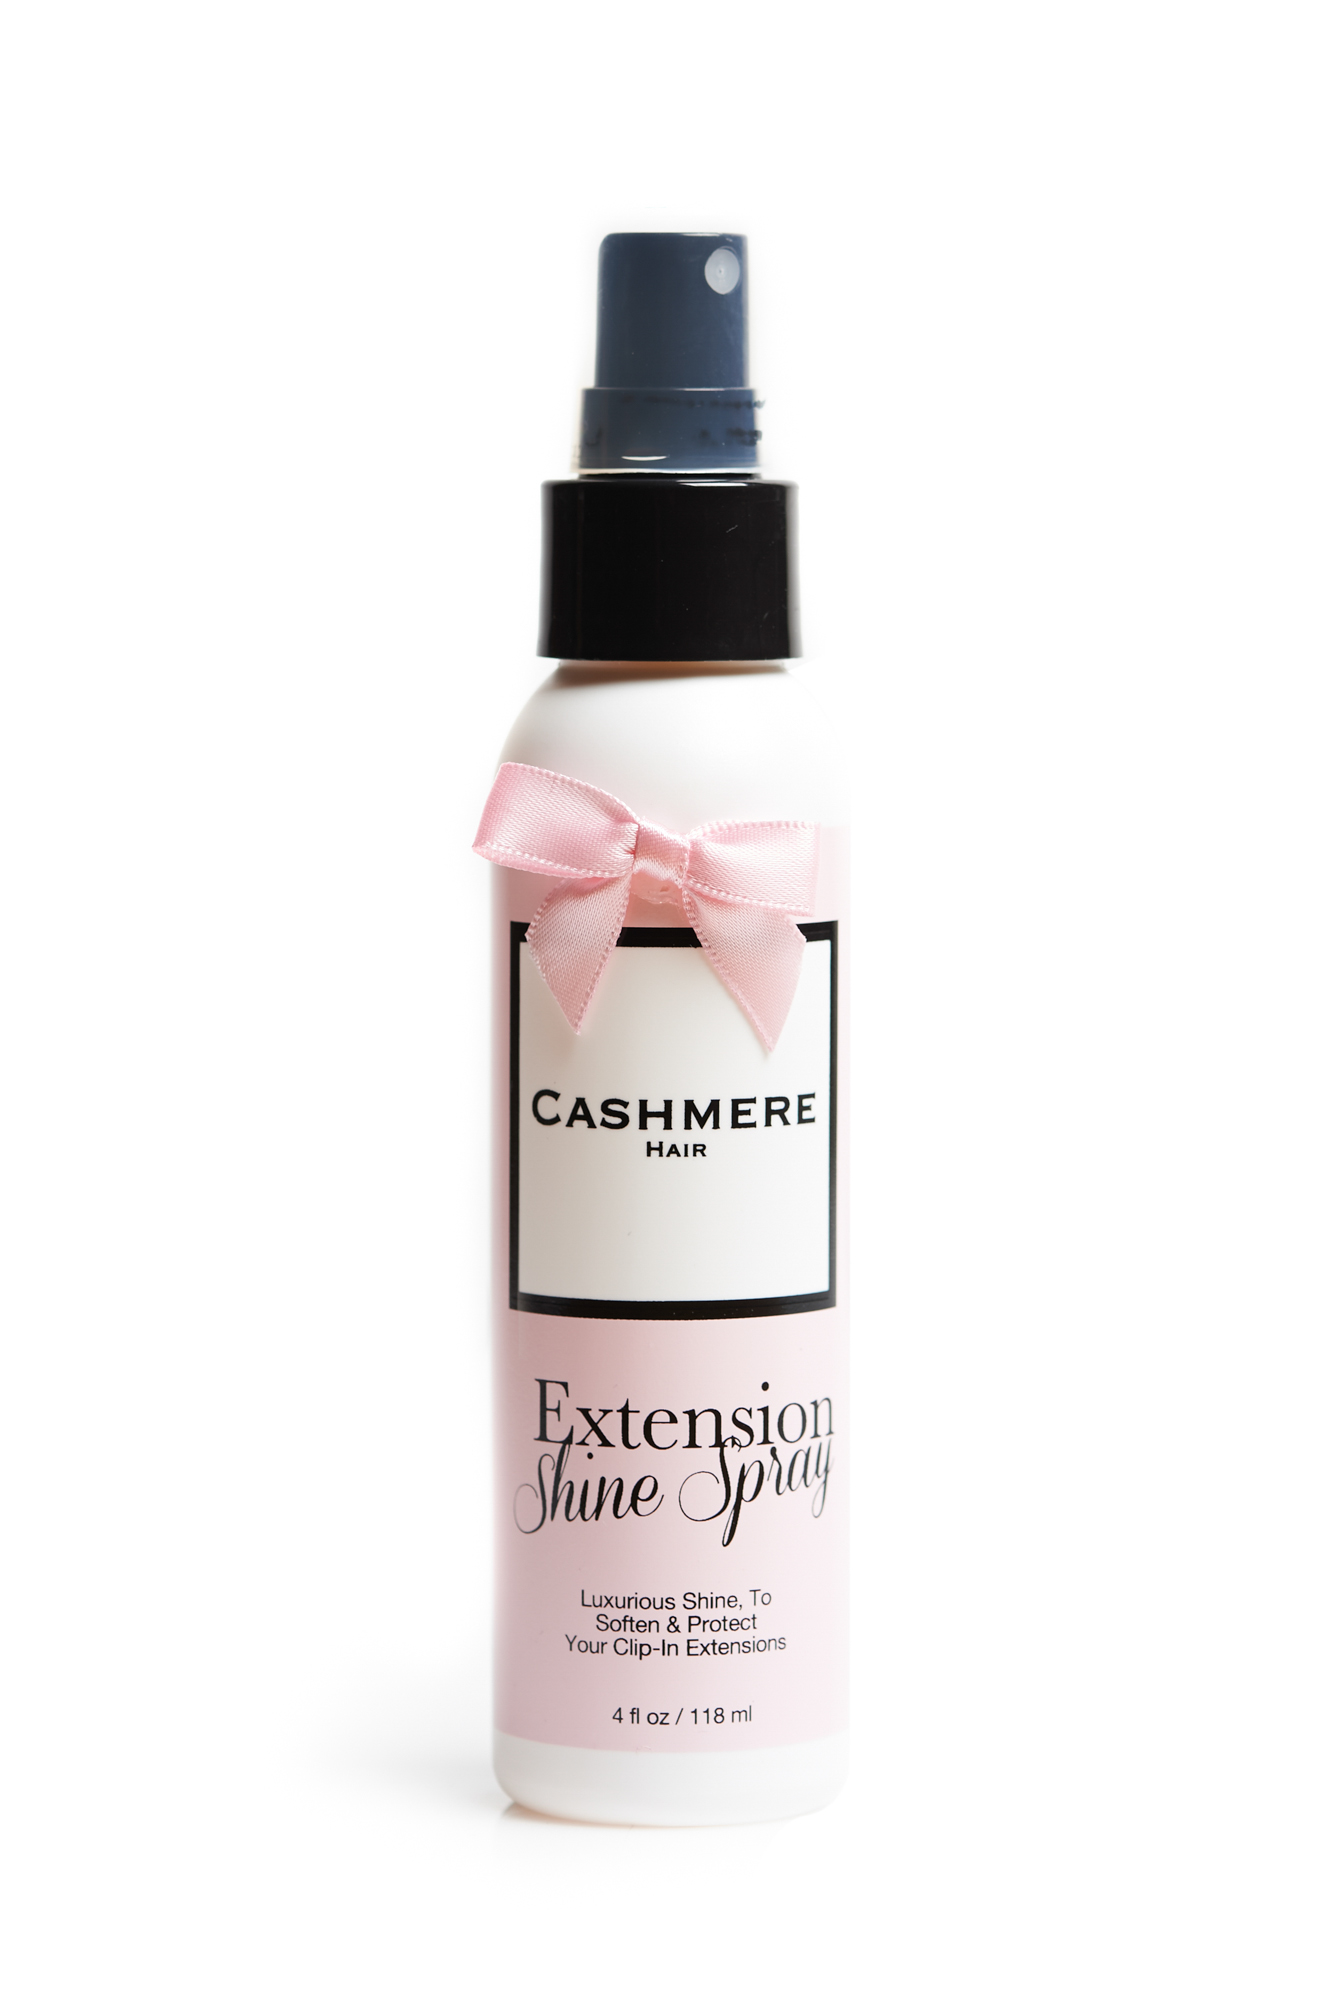 Cashmere Hair's New Extensions Shine Spray. Sale only $14.99!